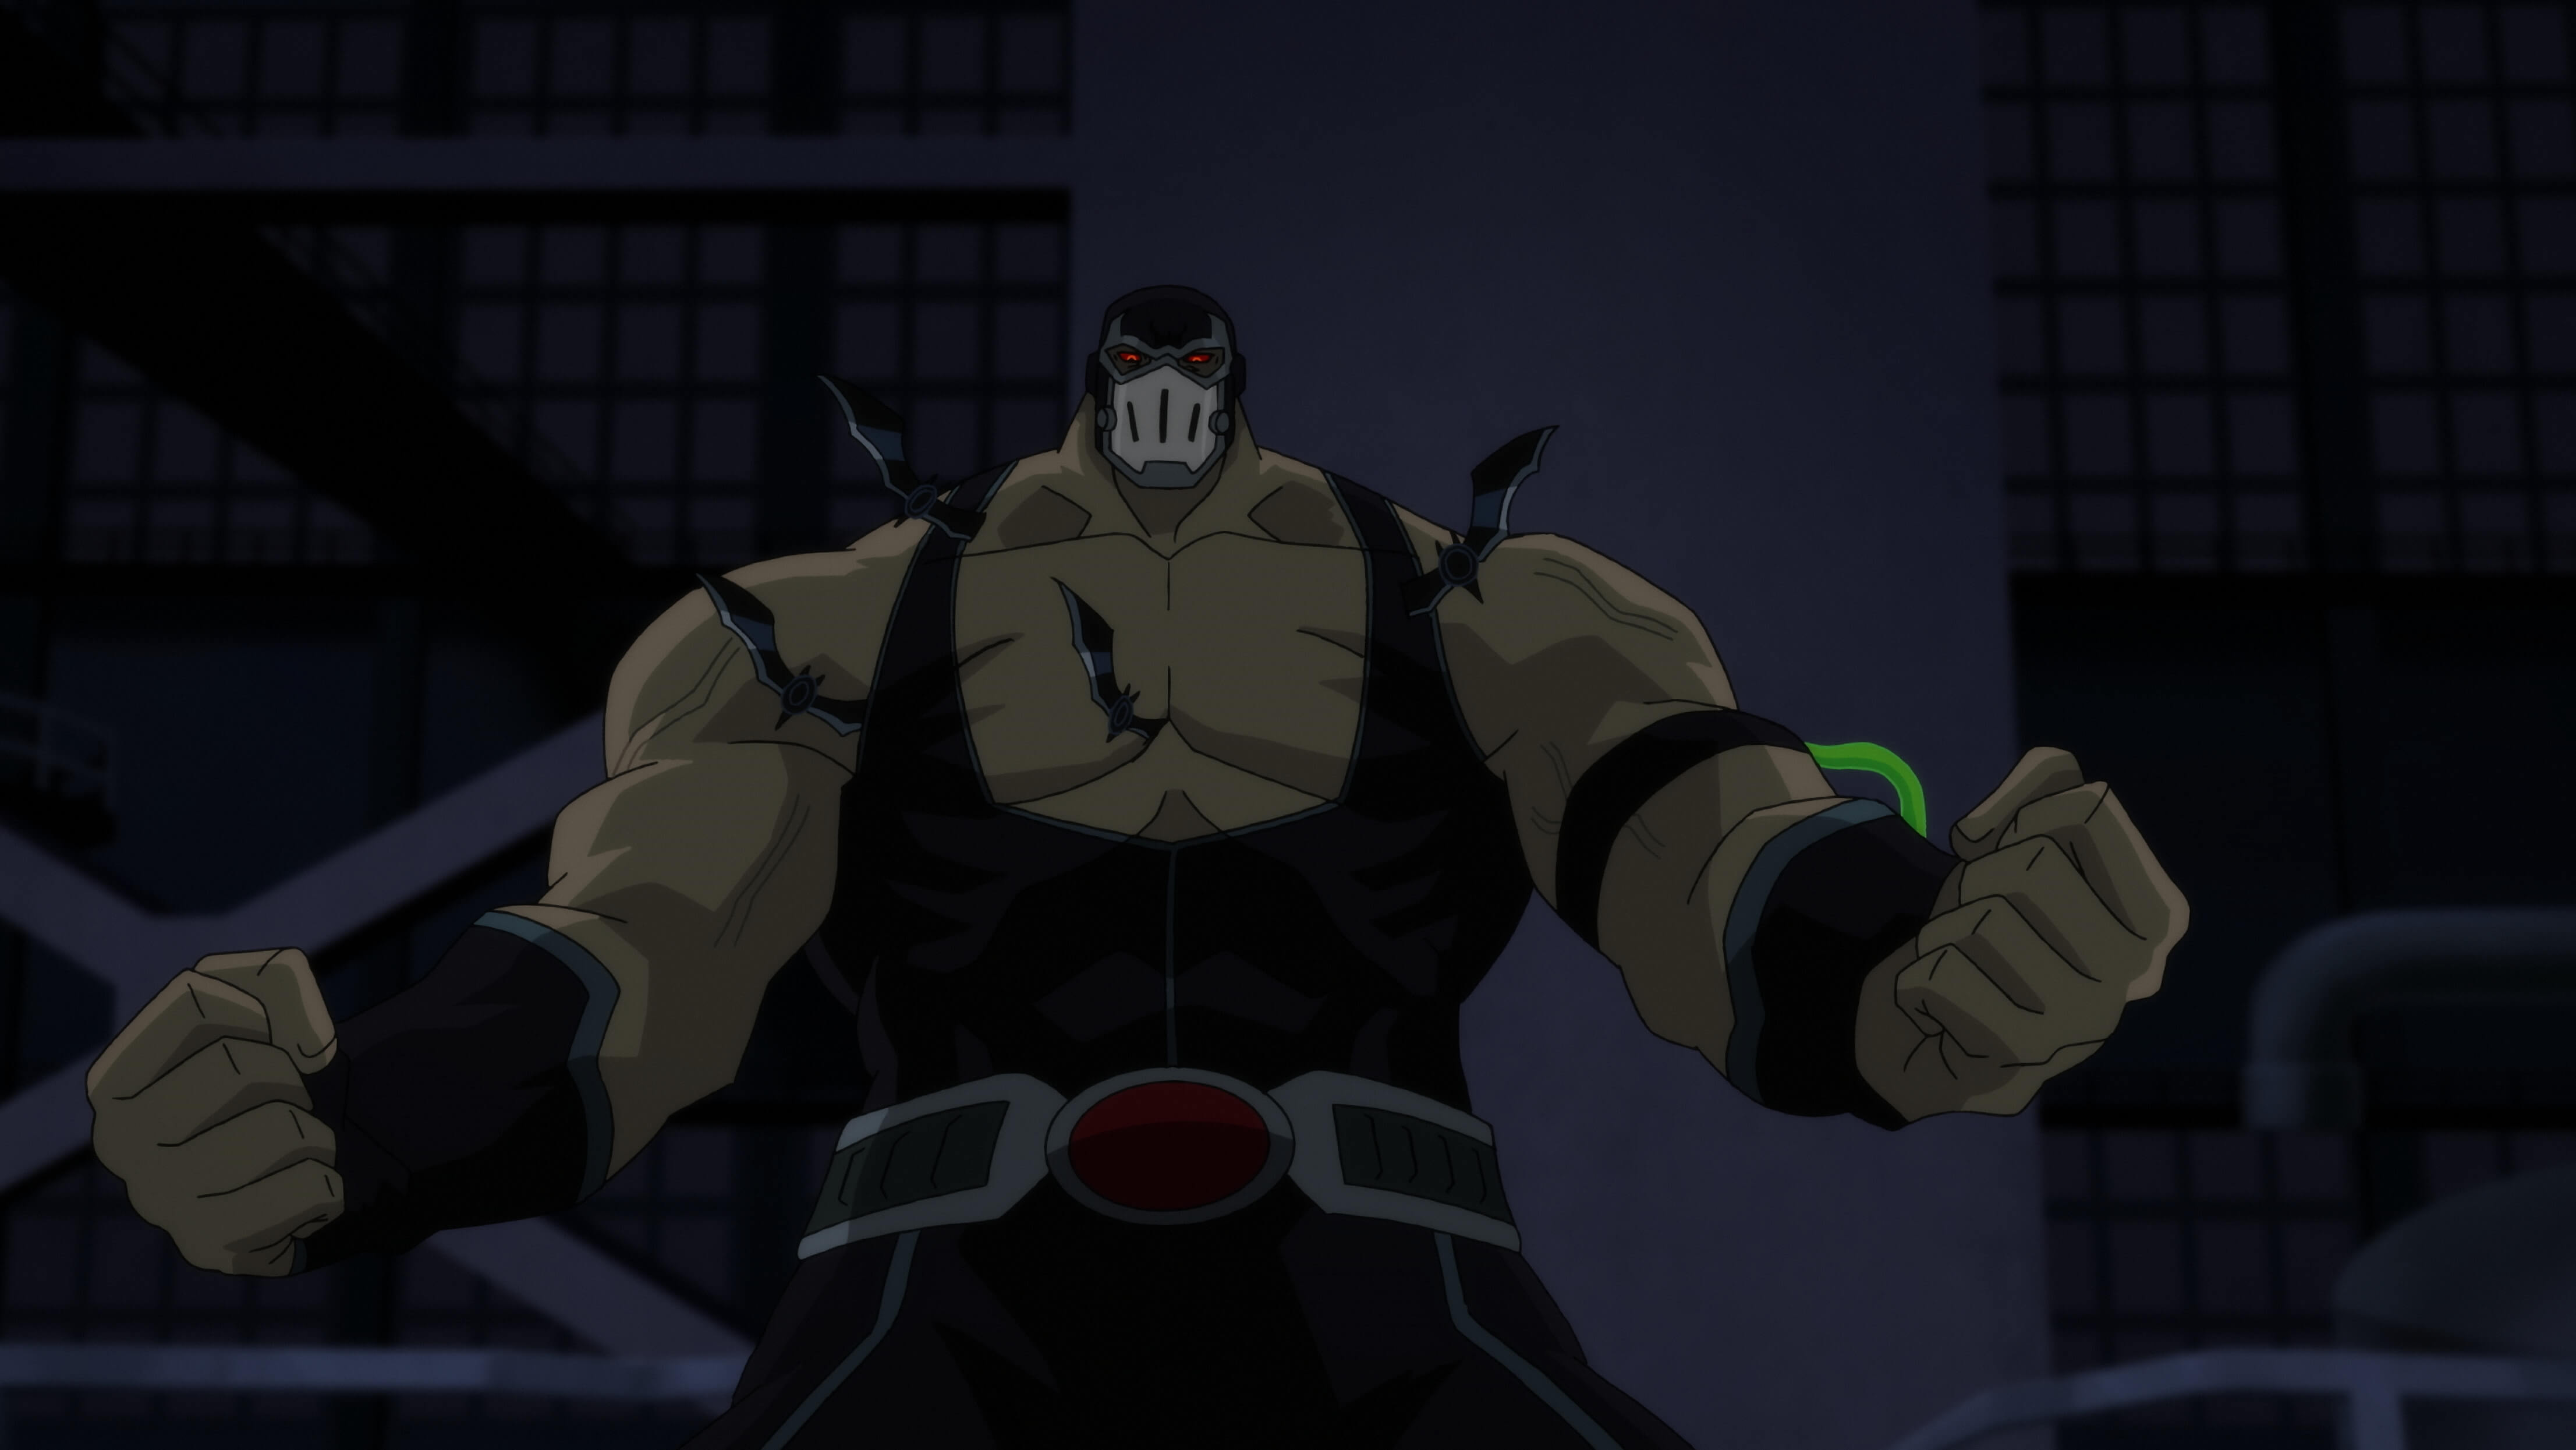 186_BatmanHush_Stills-01.jpg